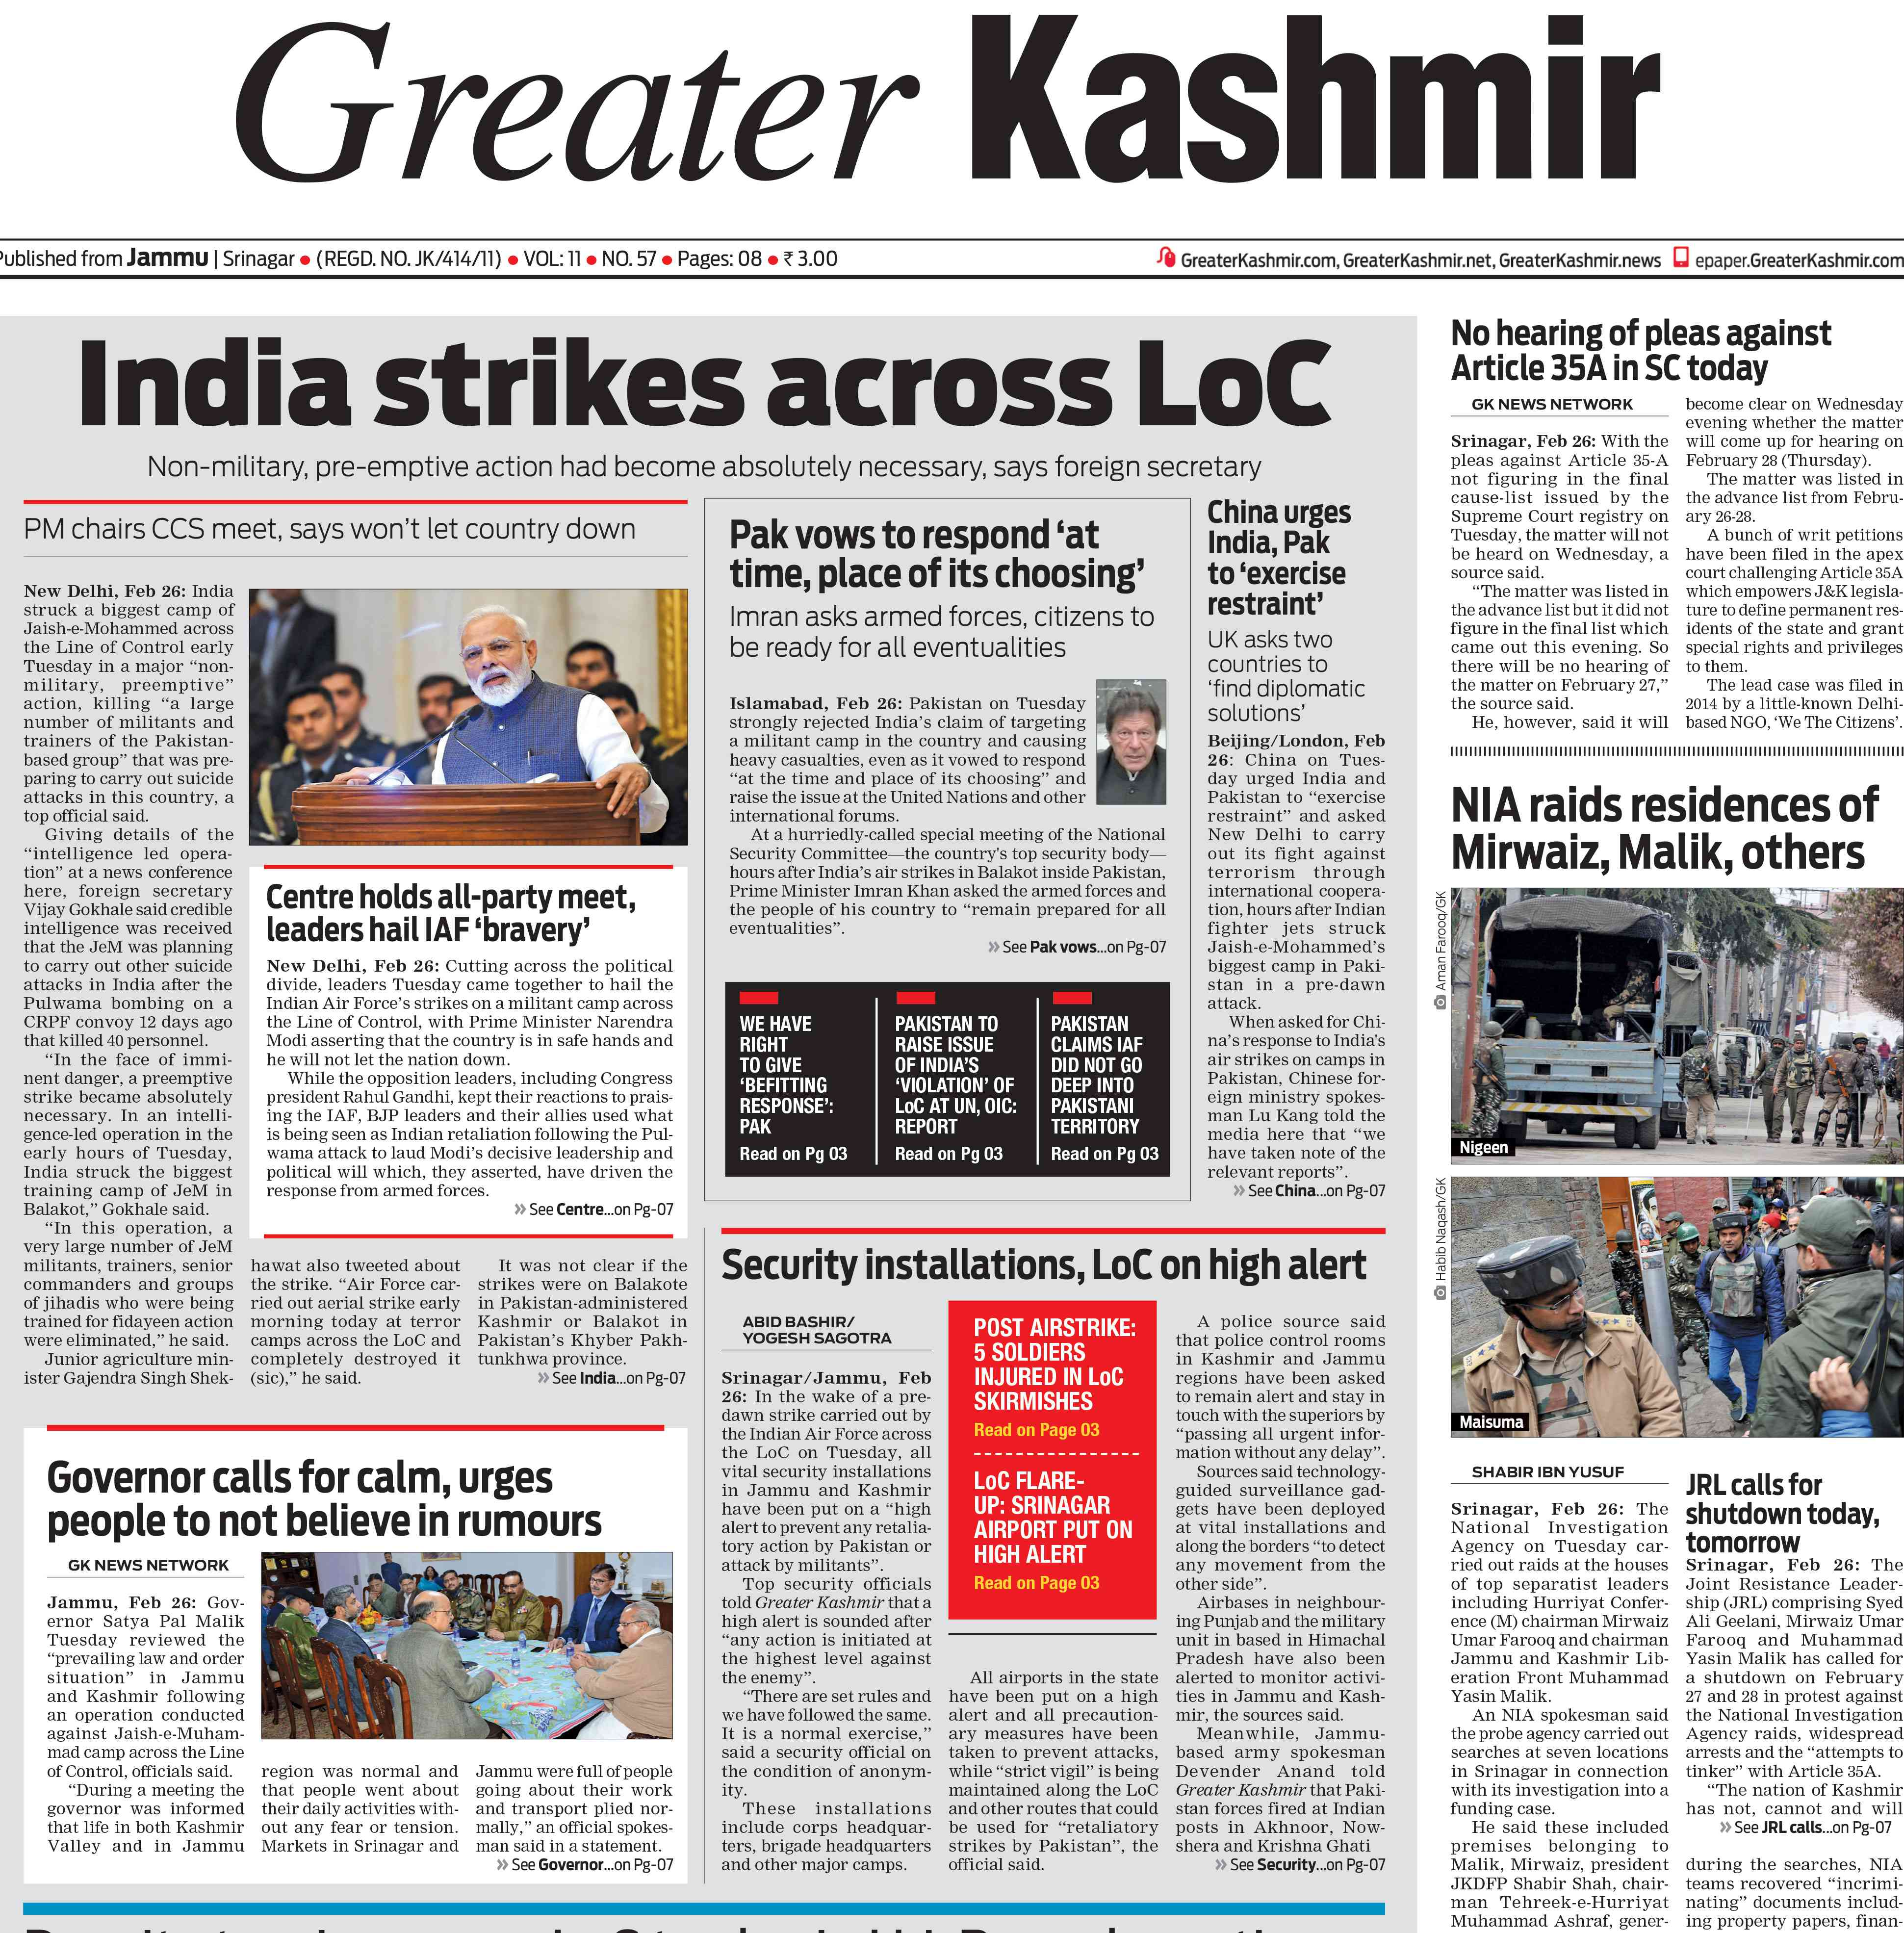 How is the Jaish? Destroyed, sir': What front pages said